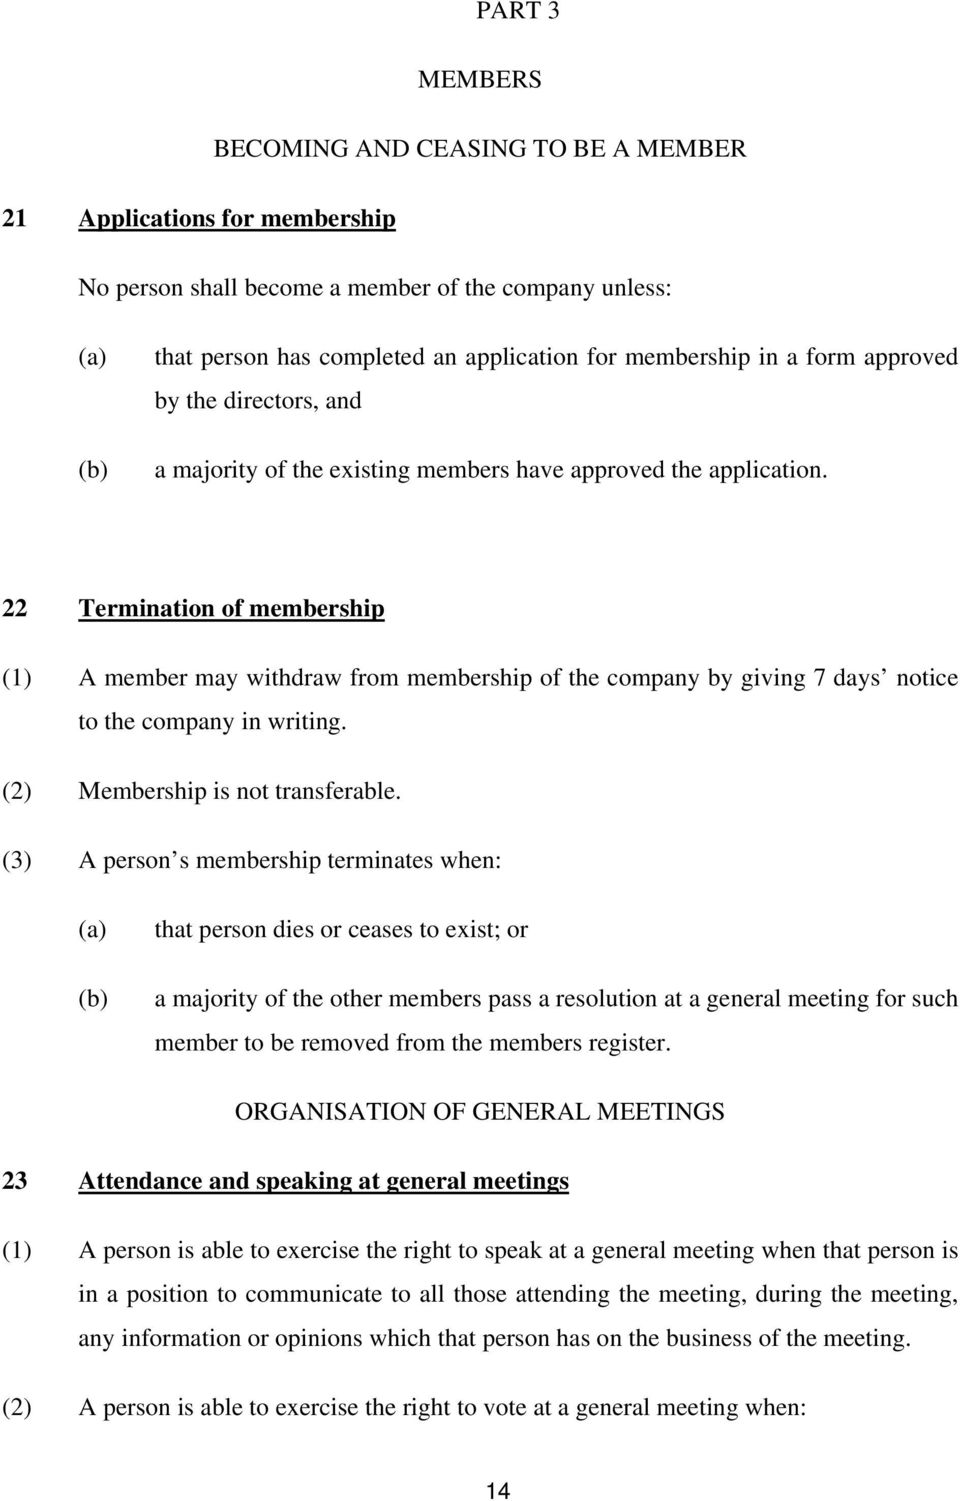 22 Termination of membership (1) A member may withdraw from membership of the company by giving 7 days notice to the company in writing. (2) Membership is not transferable.